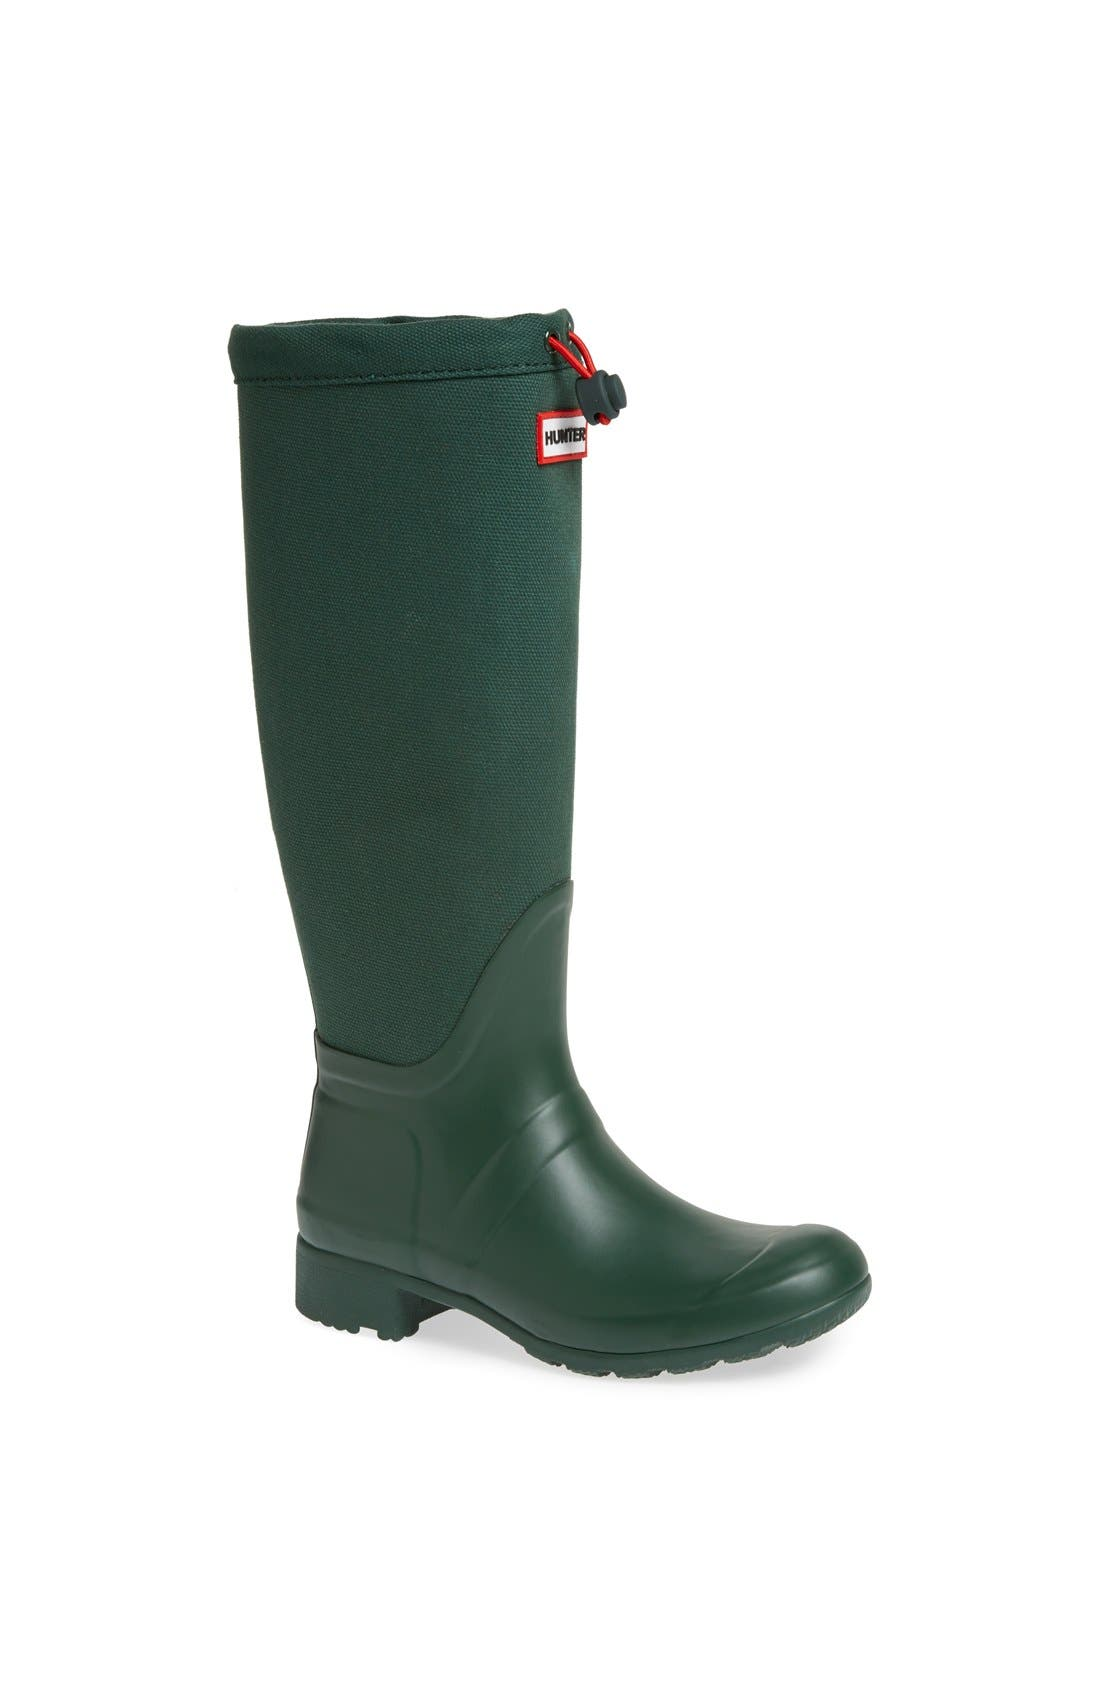 Alternate Image 1 Selected - Hunter 'Tour' Packable Canvas Rain Boot (Women)